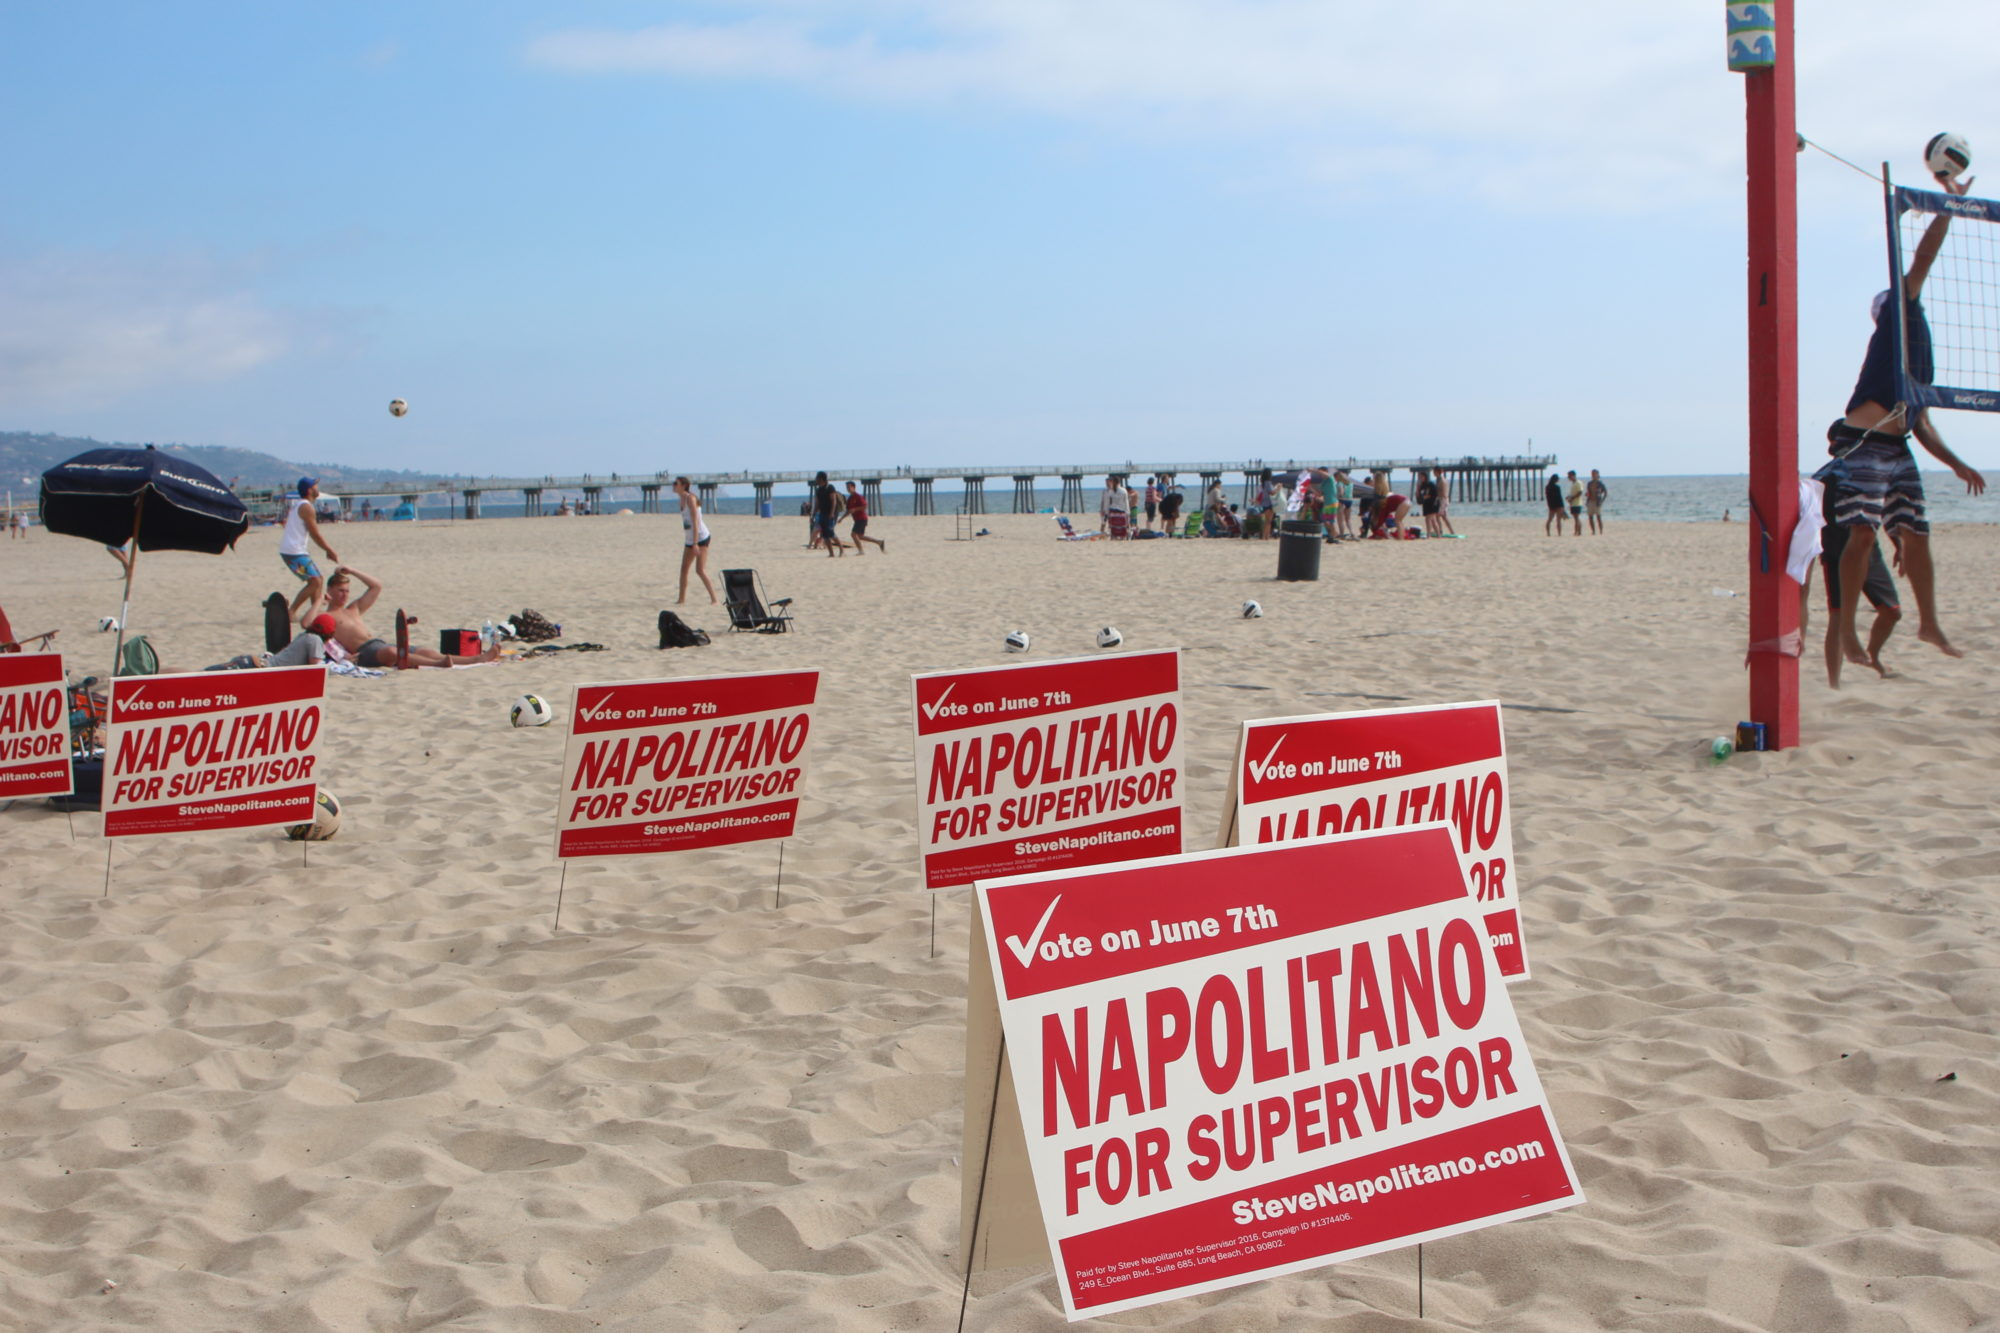 Hahn, Napolitano to face off in General Election